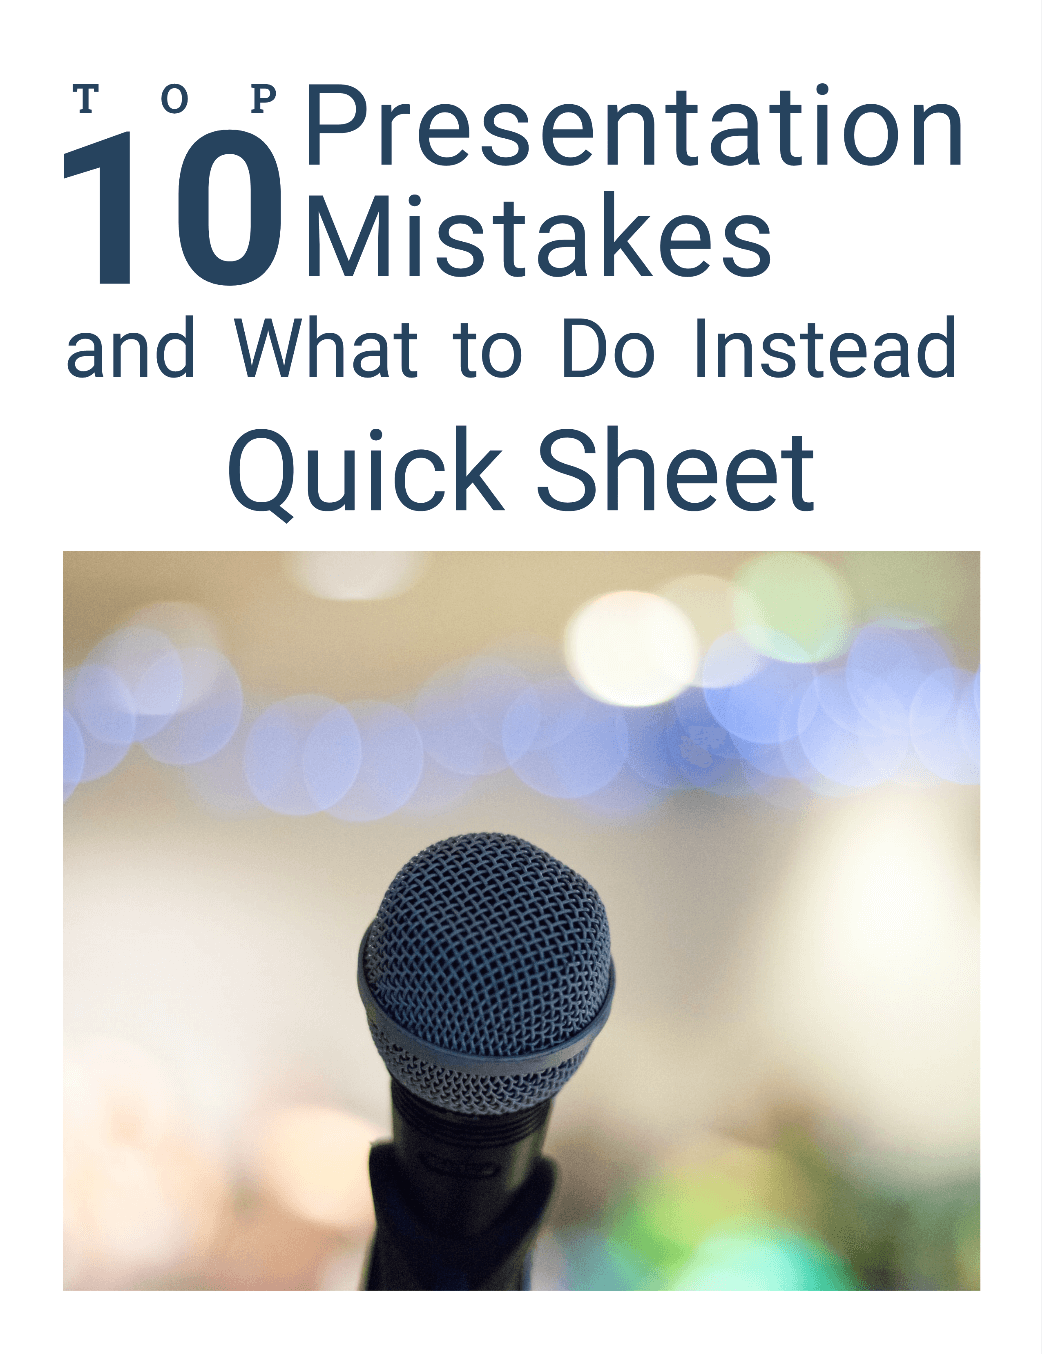 Top 10 Presentation Mistakes and What to Do Instead